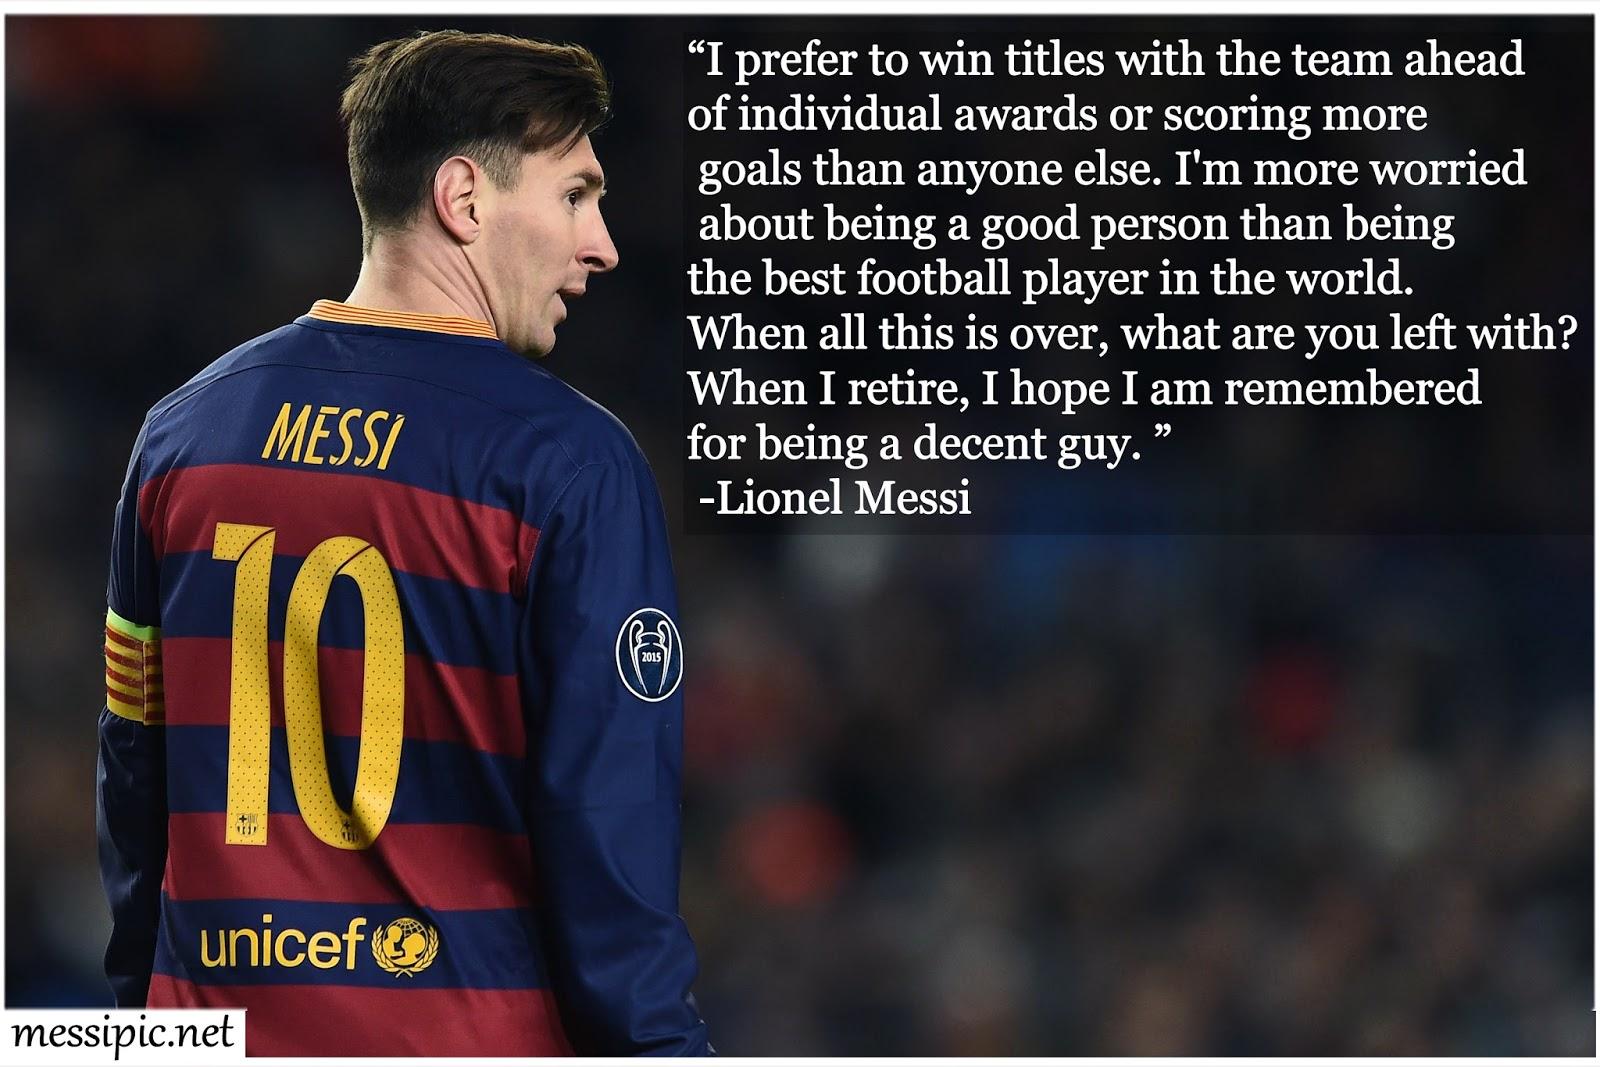 Lionel Messi Quotes On Pictures